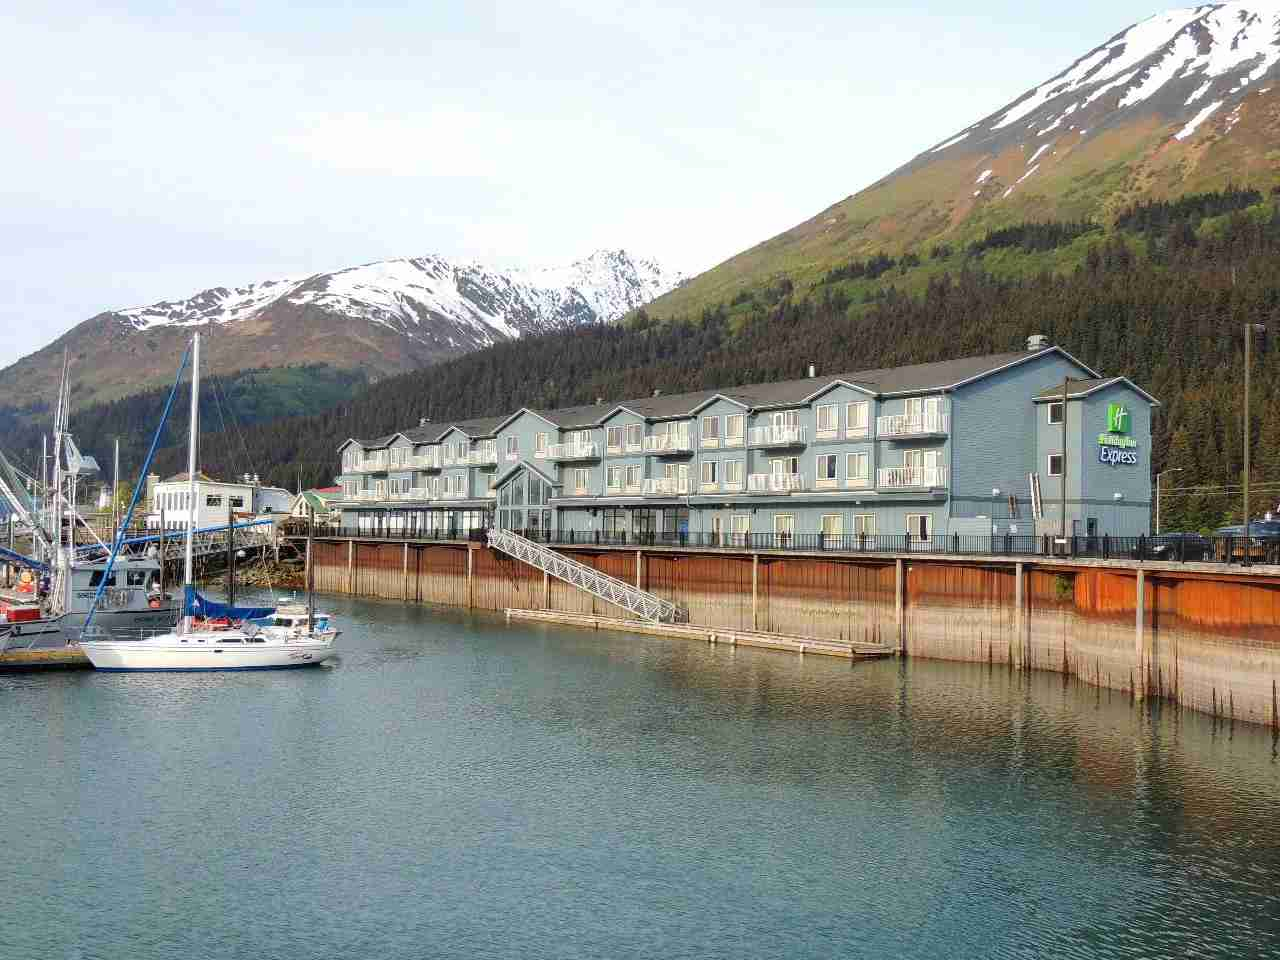 Stayed at Holiday Inn Express in Seward on IHG points.